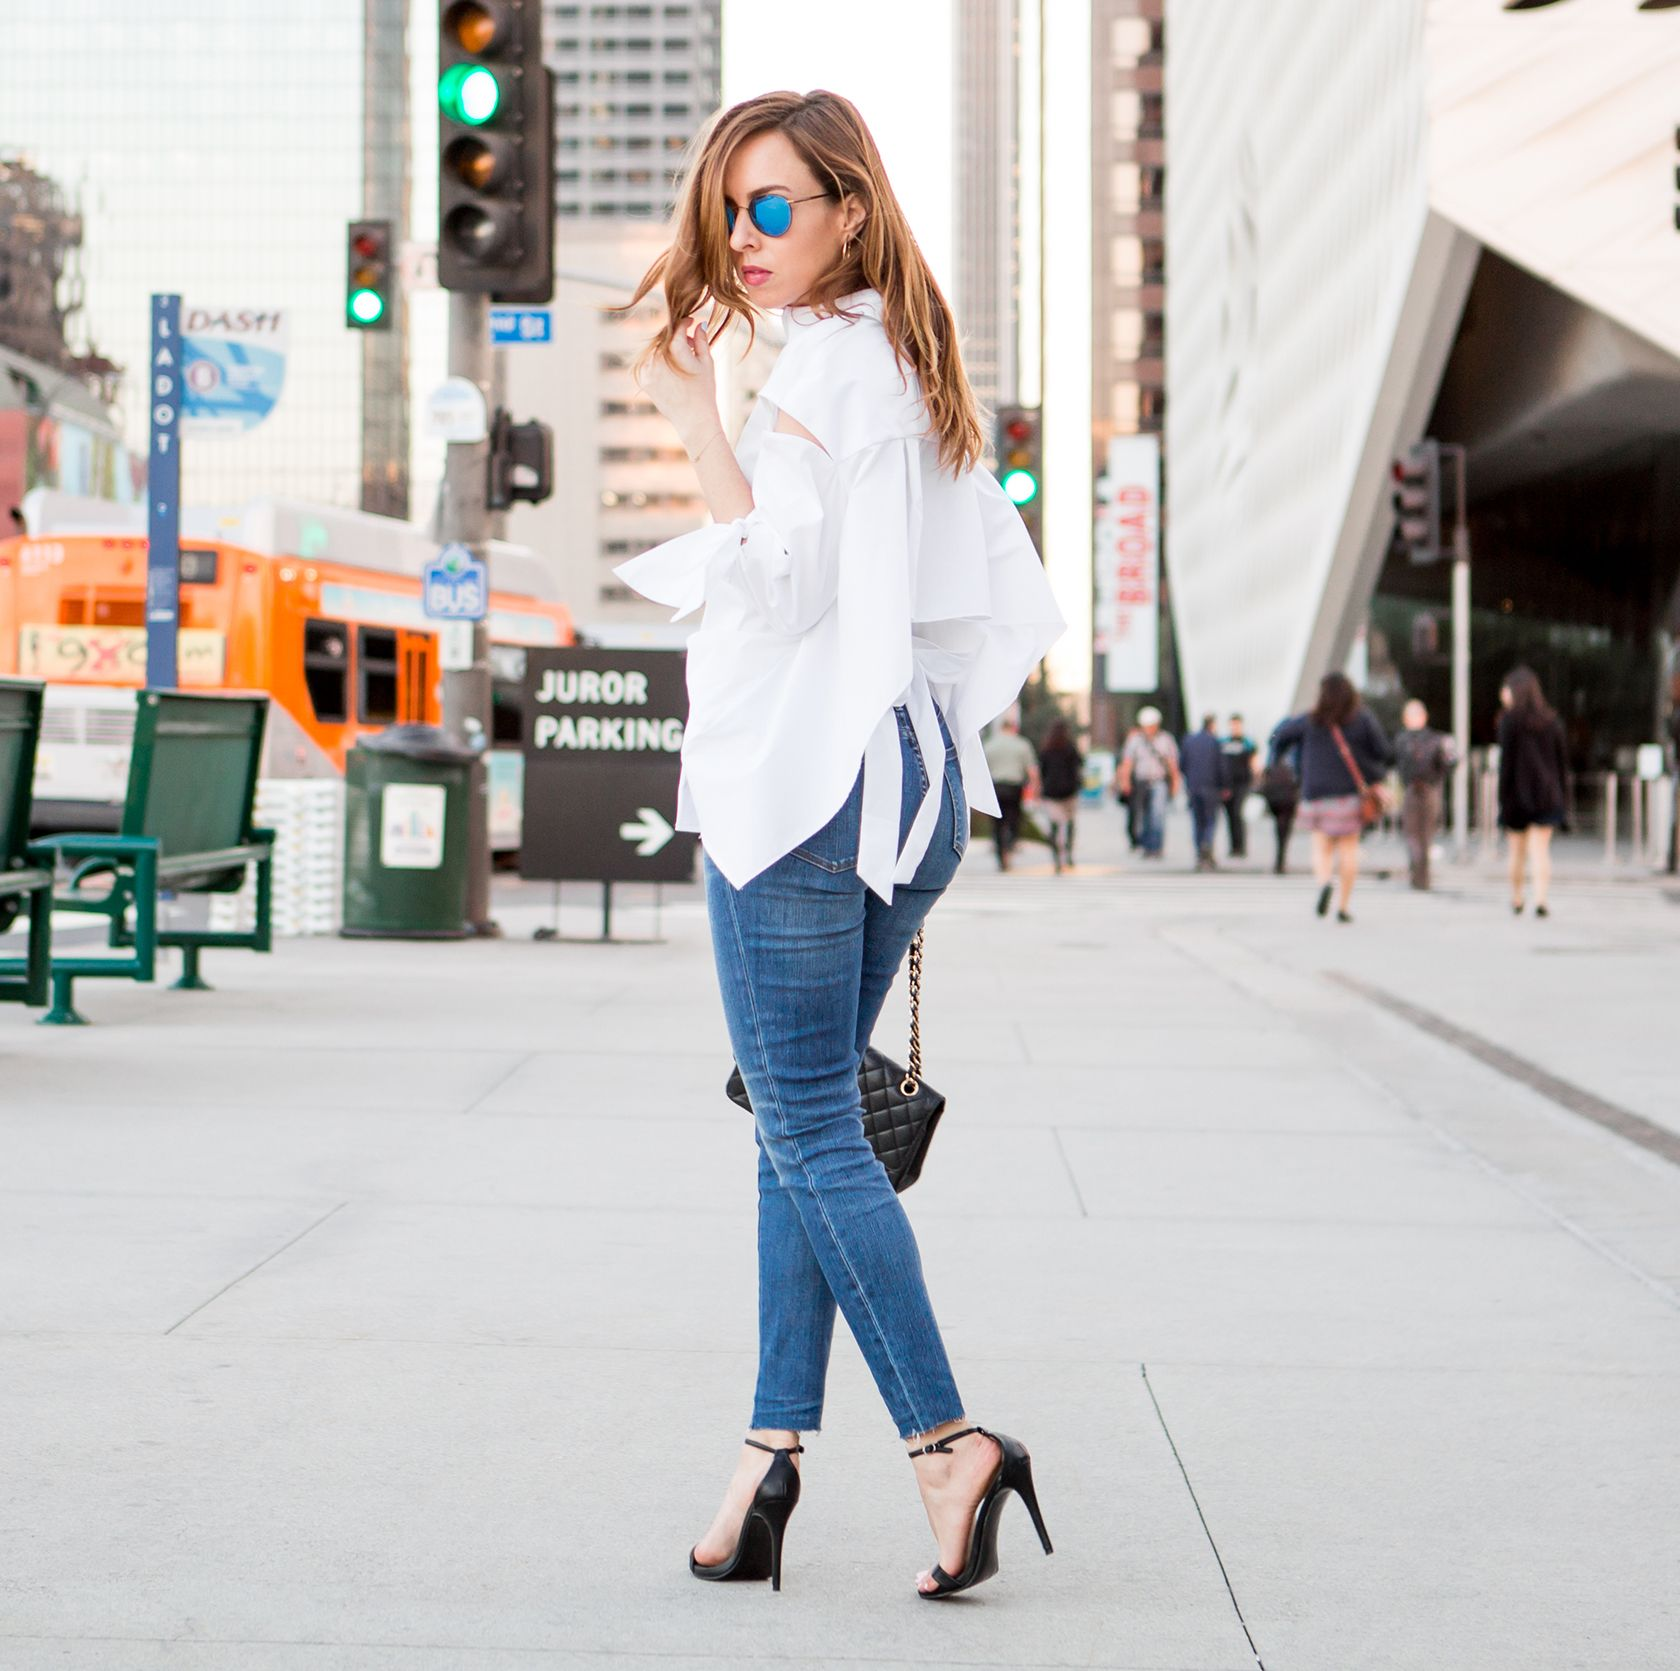 f72109d17f40 Sydne Style wears Milly white button down shirt with skinny jeans for spring  outfit ideas